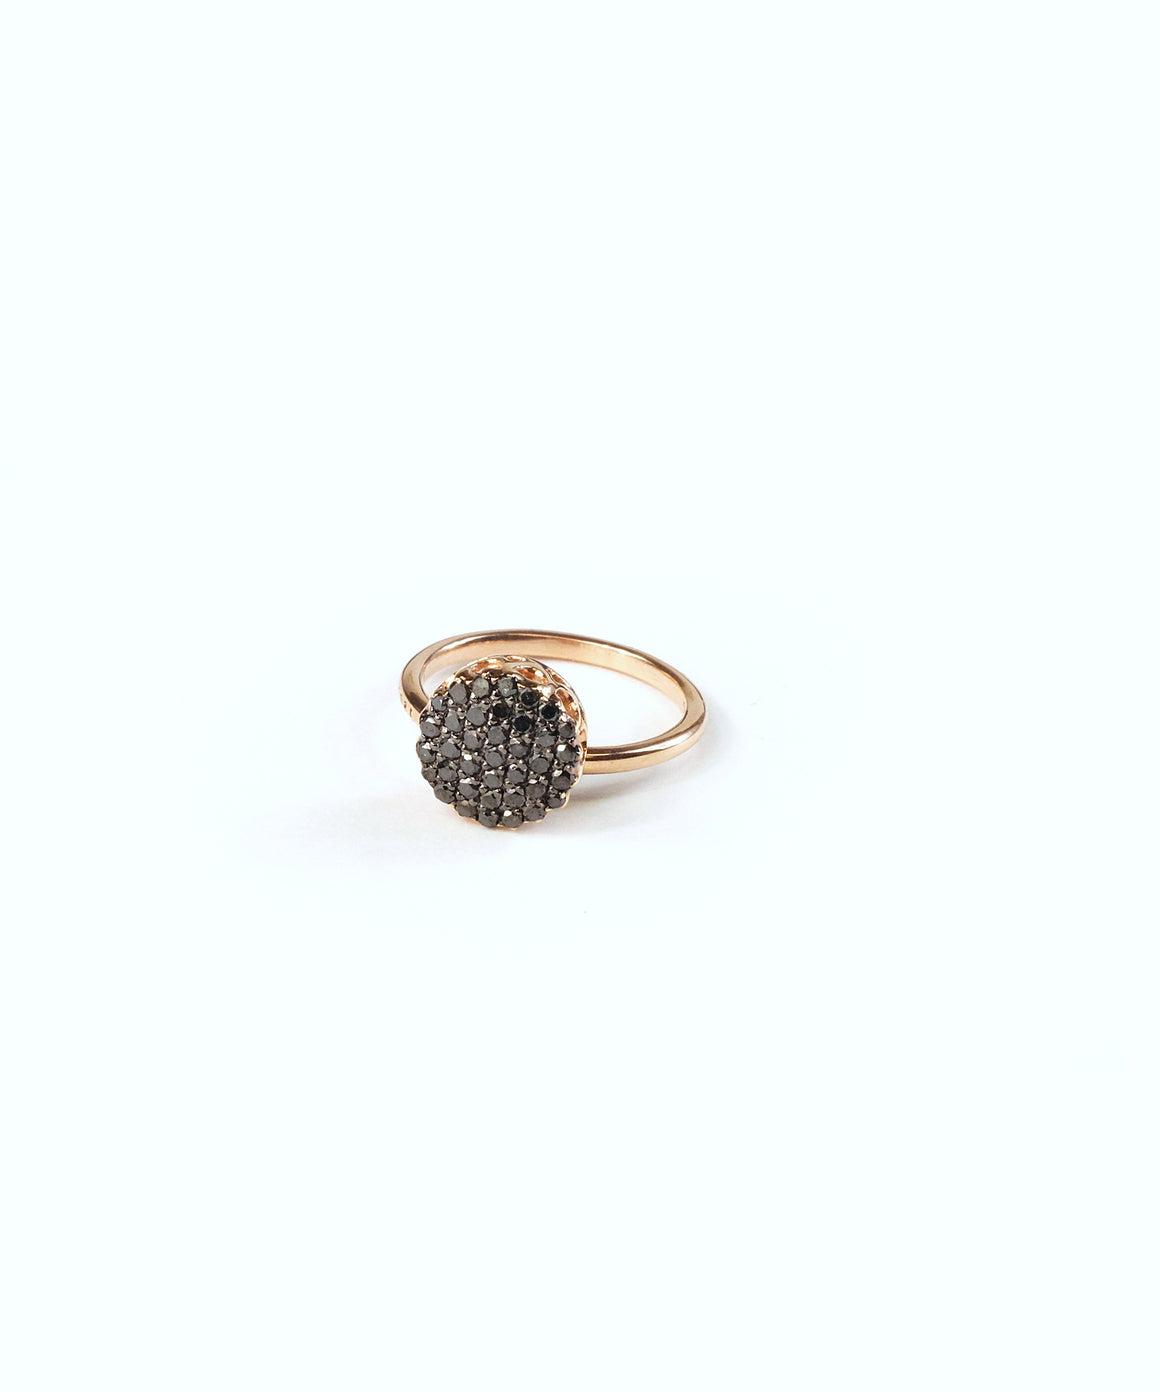 Black Diamond Stack Ring - Lesley Ann Jewels